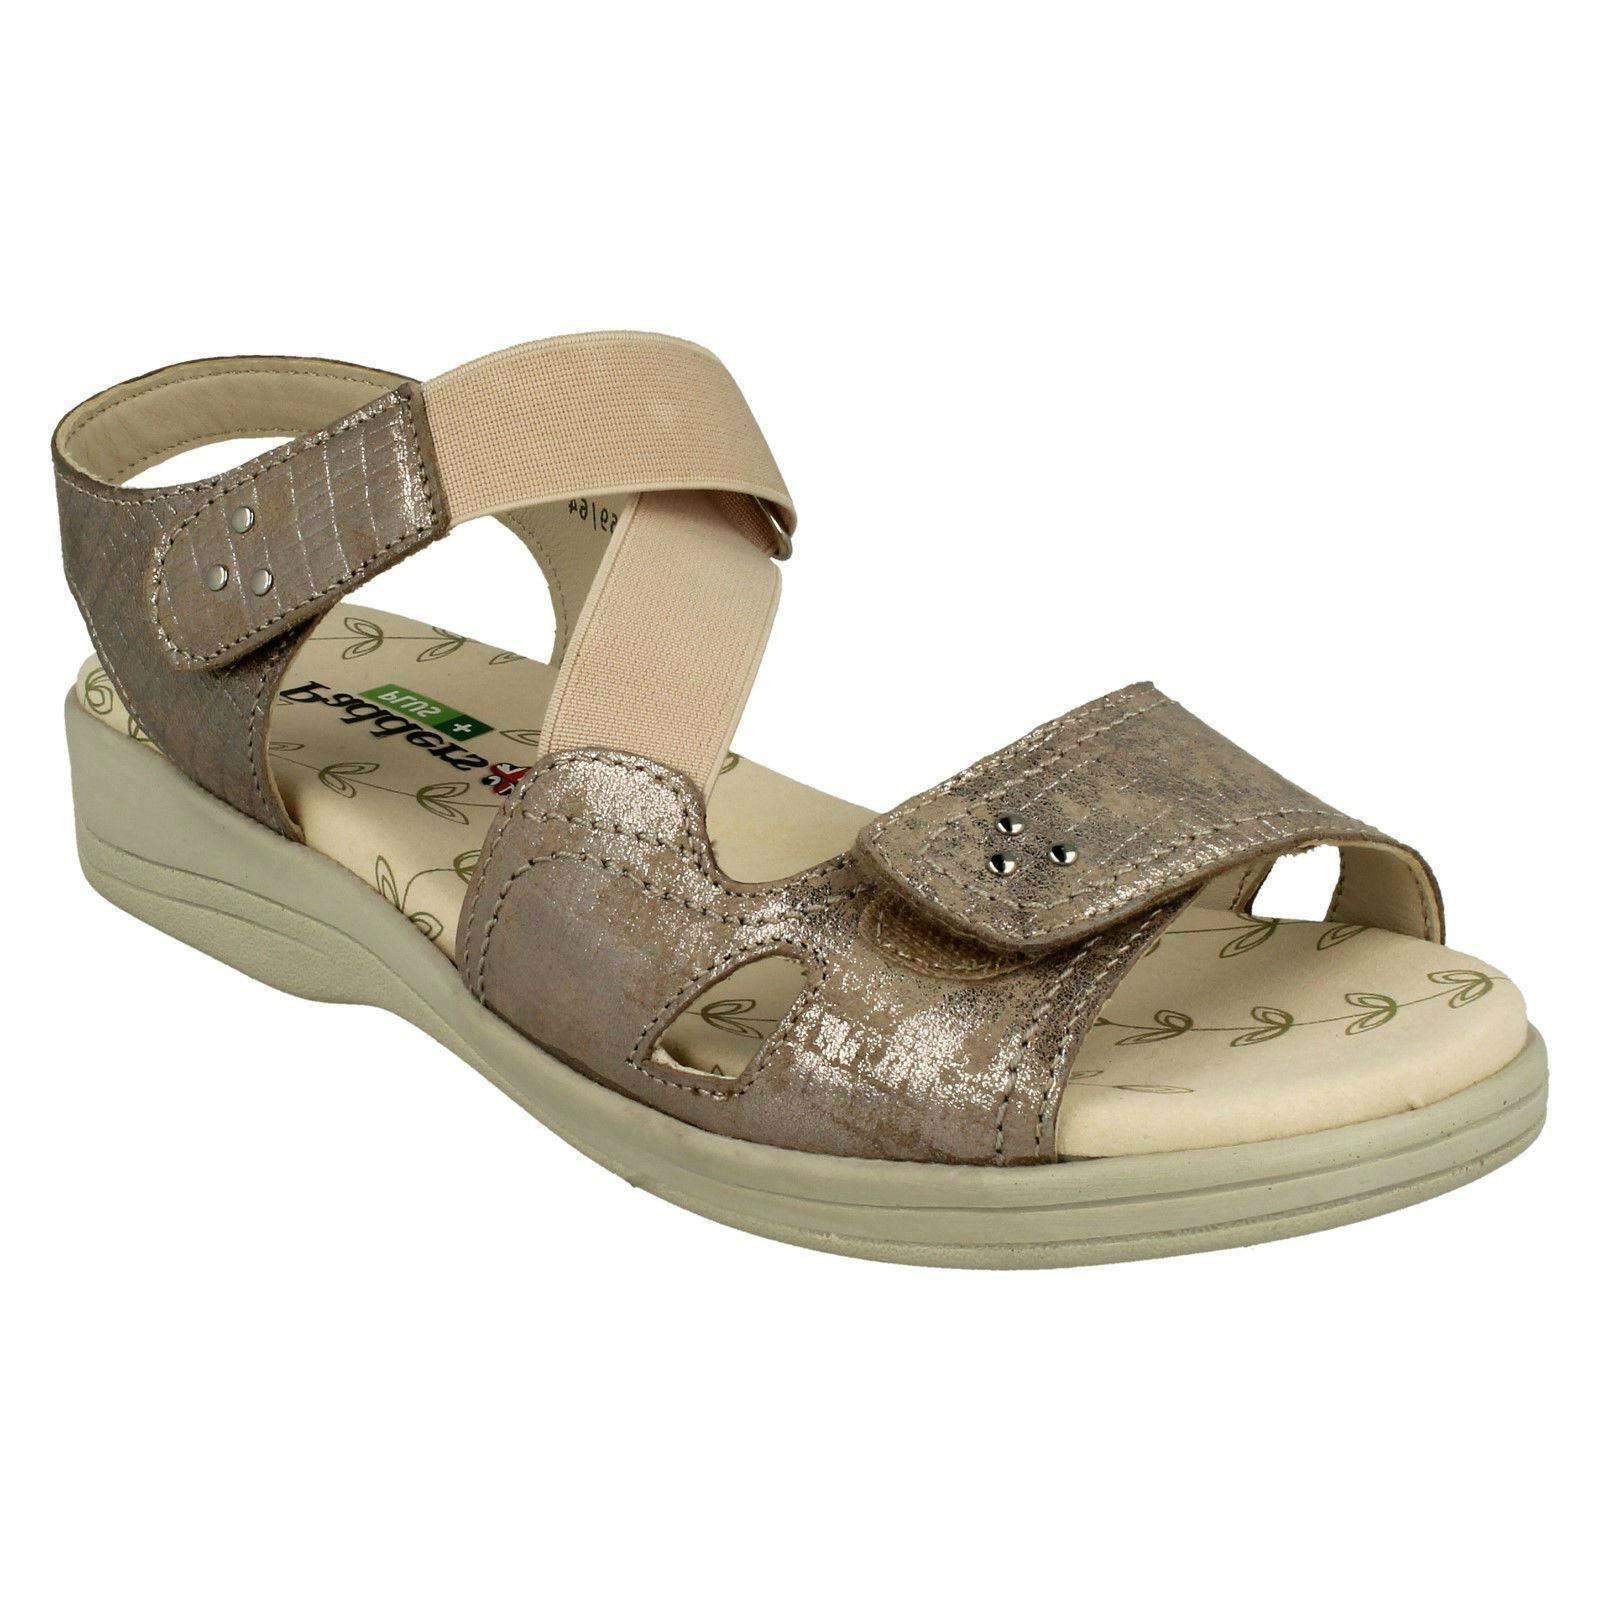 CRUISE LADIES PADDERS LEATHER ELASTICATED EXTRA WIDE COMFORT CASUAL SANDALS SIZE